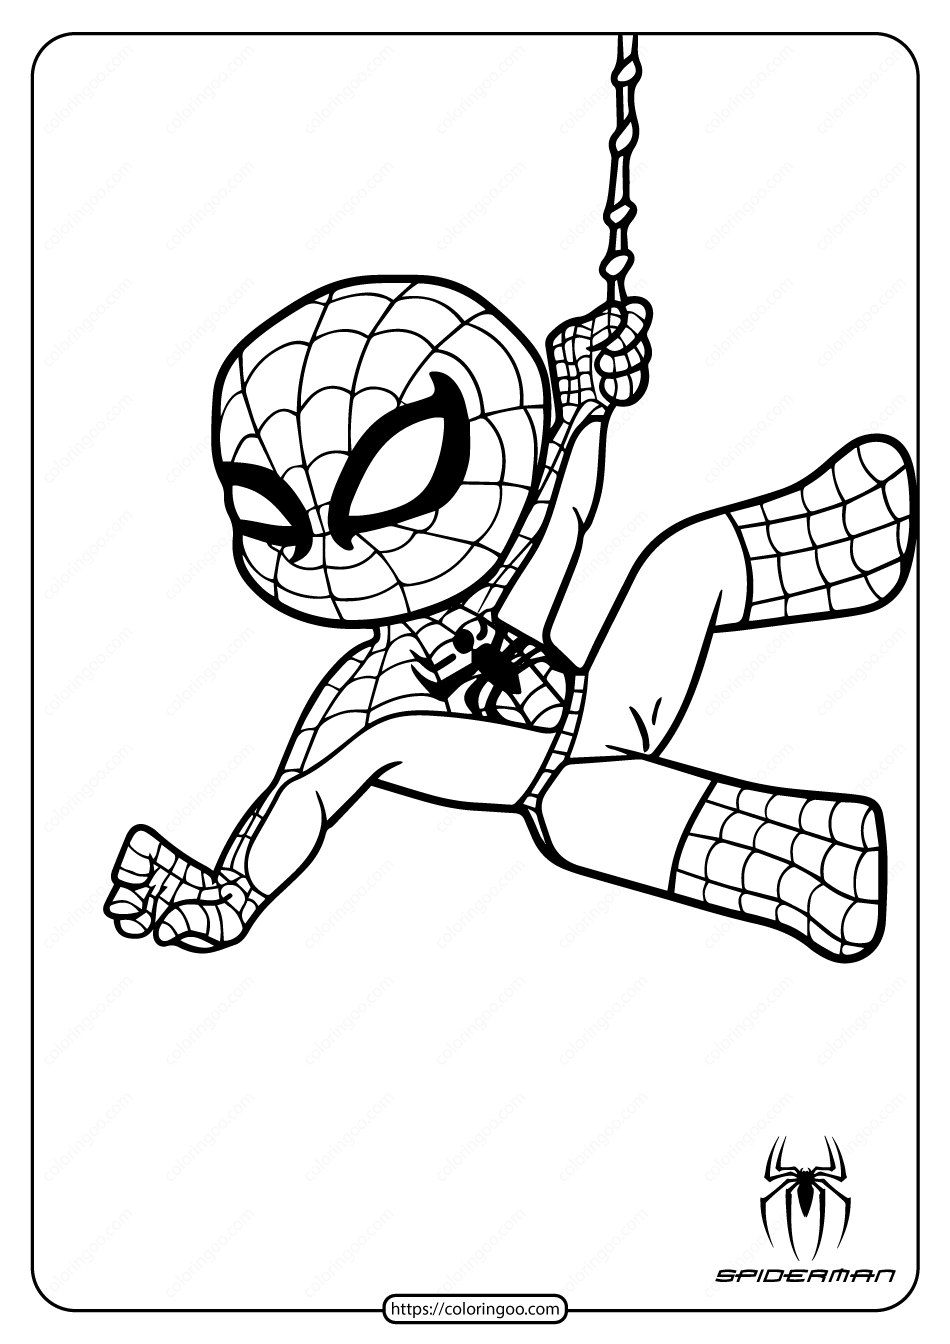 coloring spiderman for kids spiderman suit coloring page free coloring pages kids spiderman coloring for